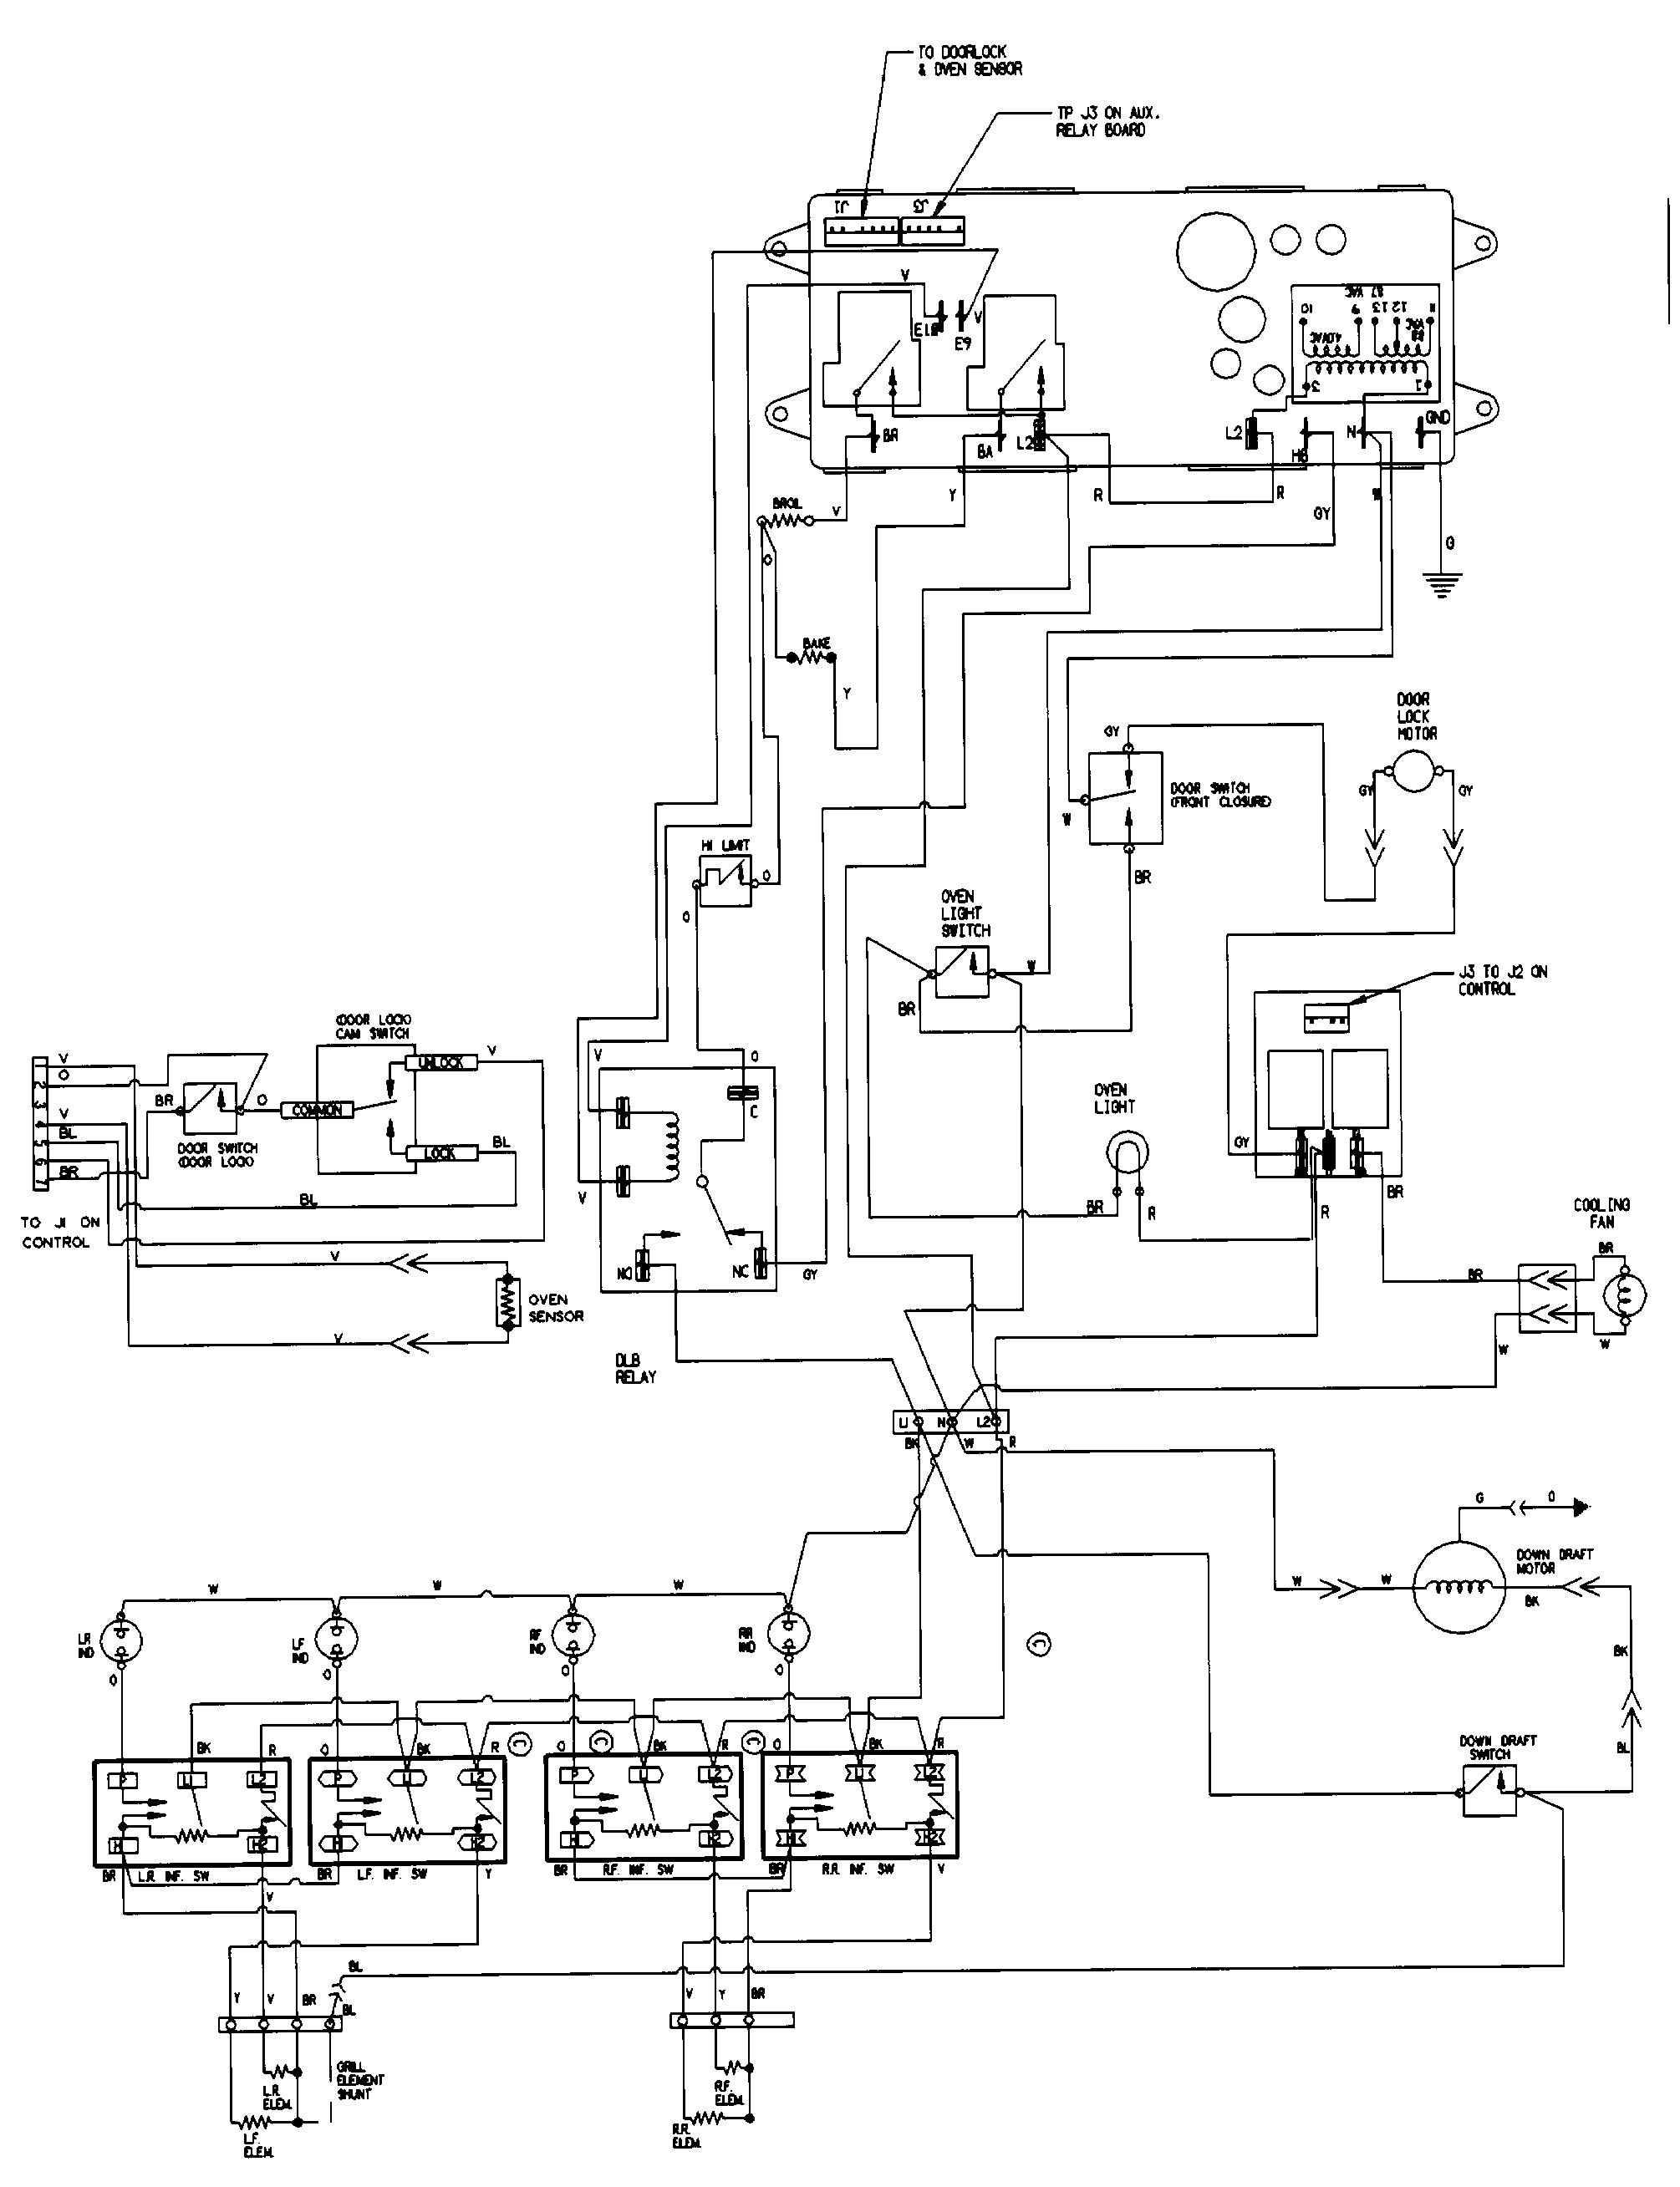 3 wire electric oven wiring diagrams